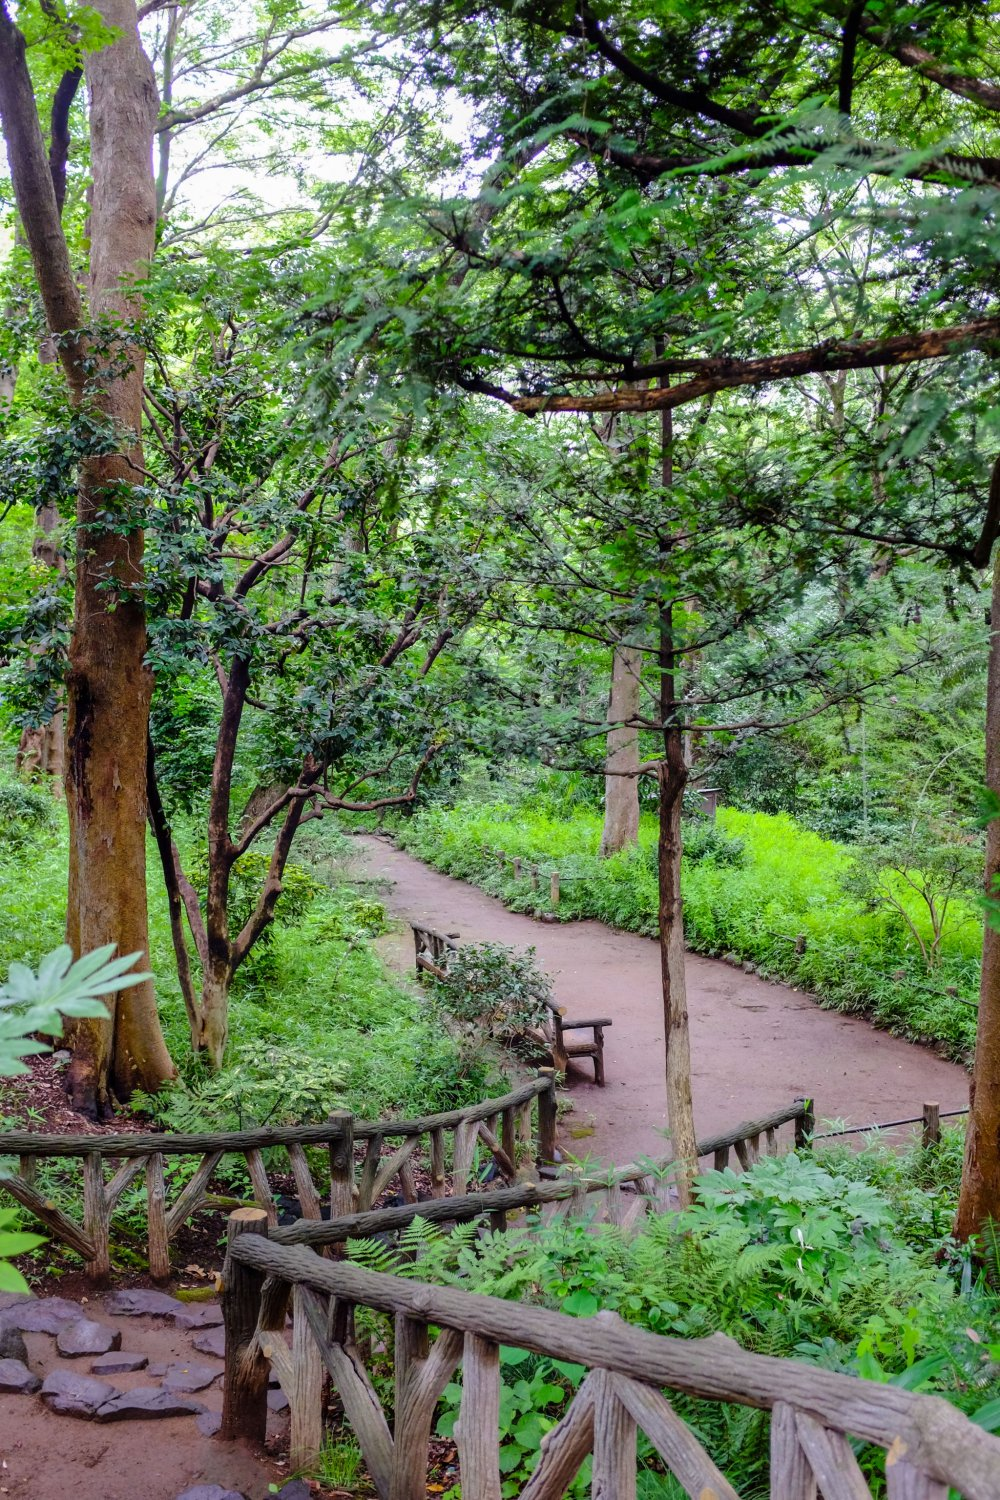 Lush green gardens make this a beautiful place to take a stroll.